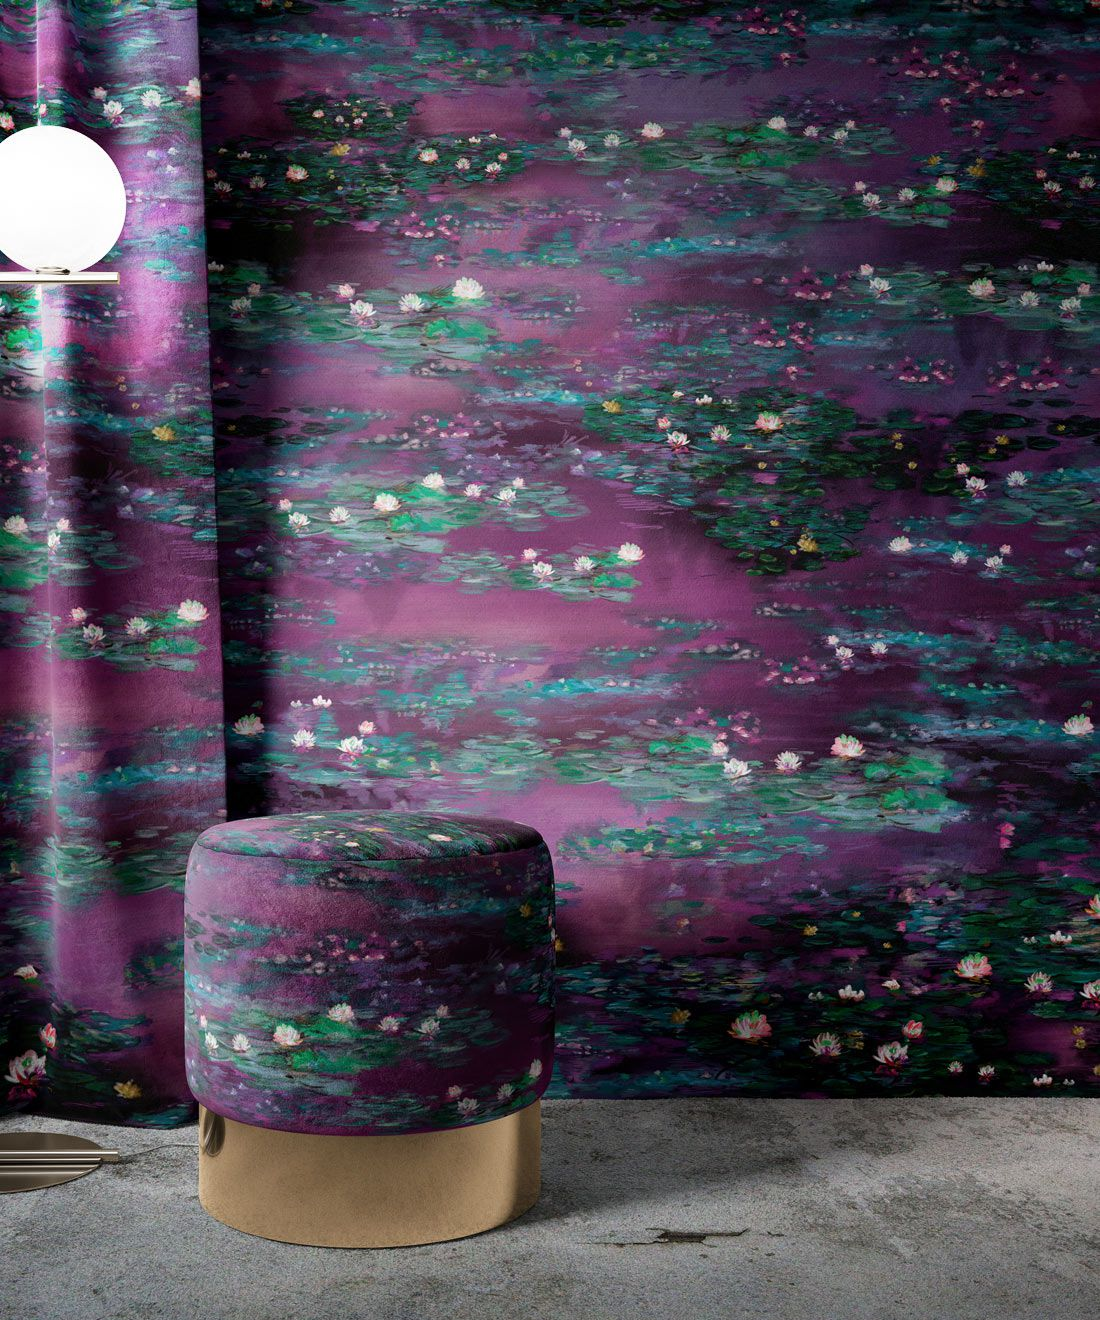 Water Lillies Wallpaper • Abstract Wallpaper • Dreamy Wallpaper • Violeta Wallpaper • Insitu